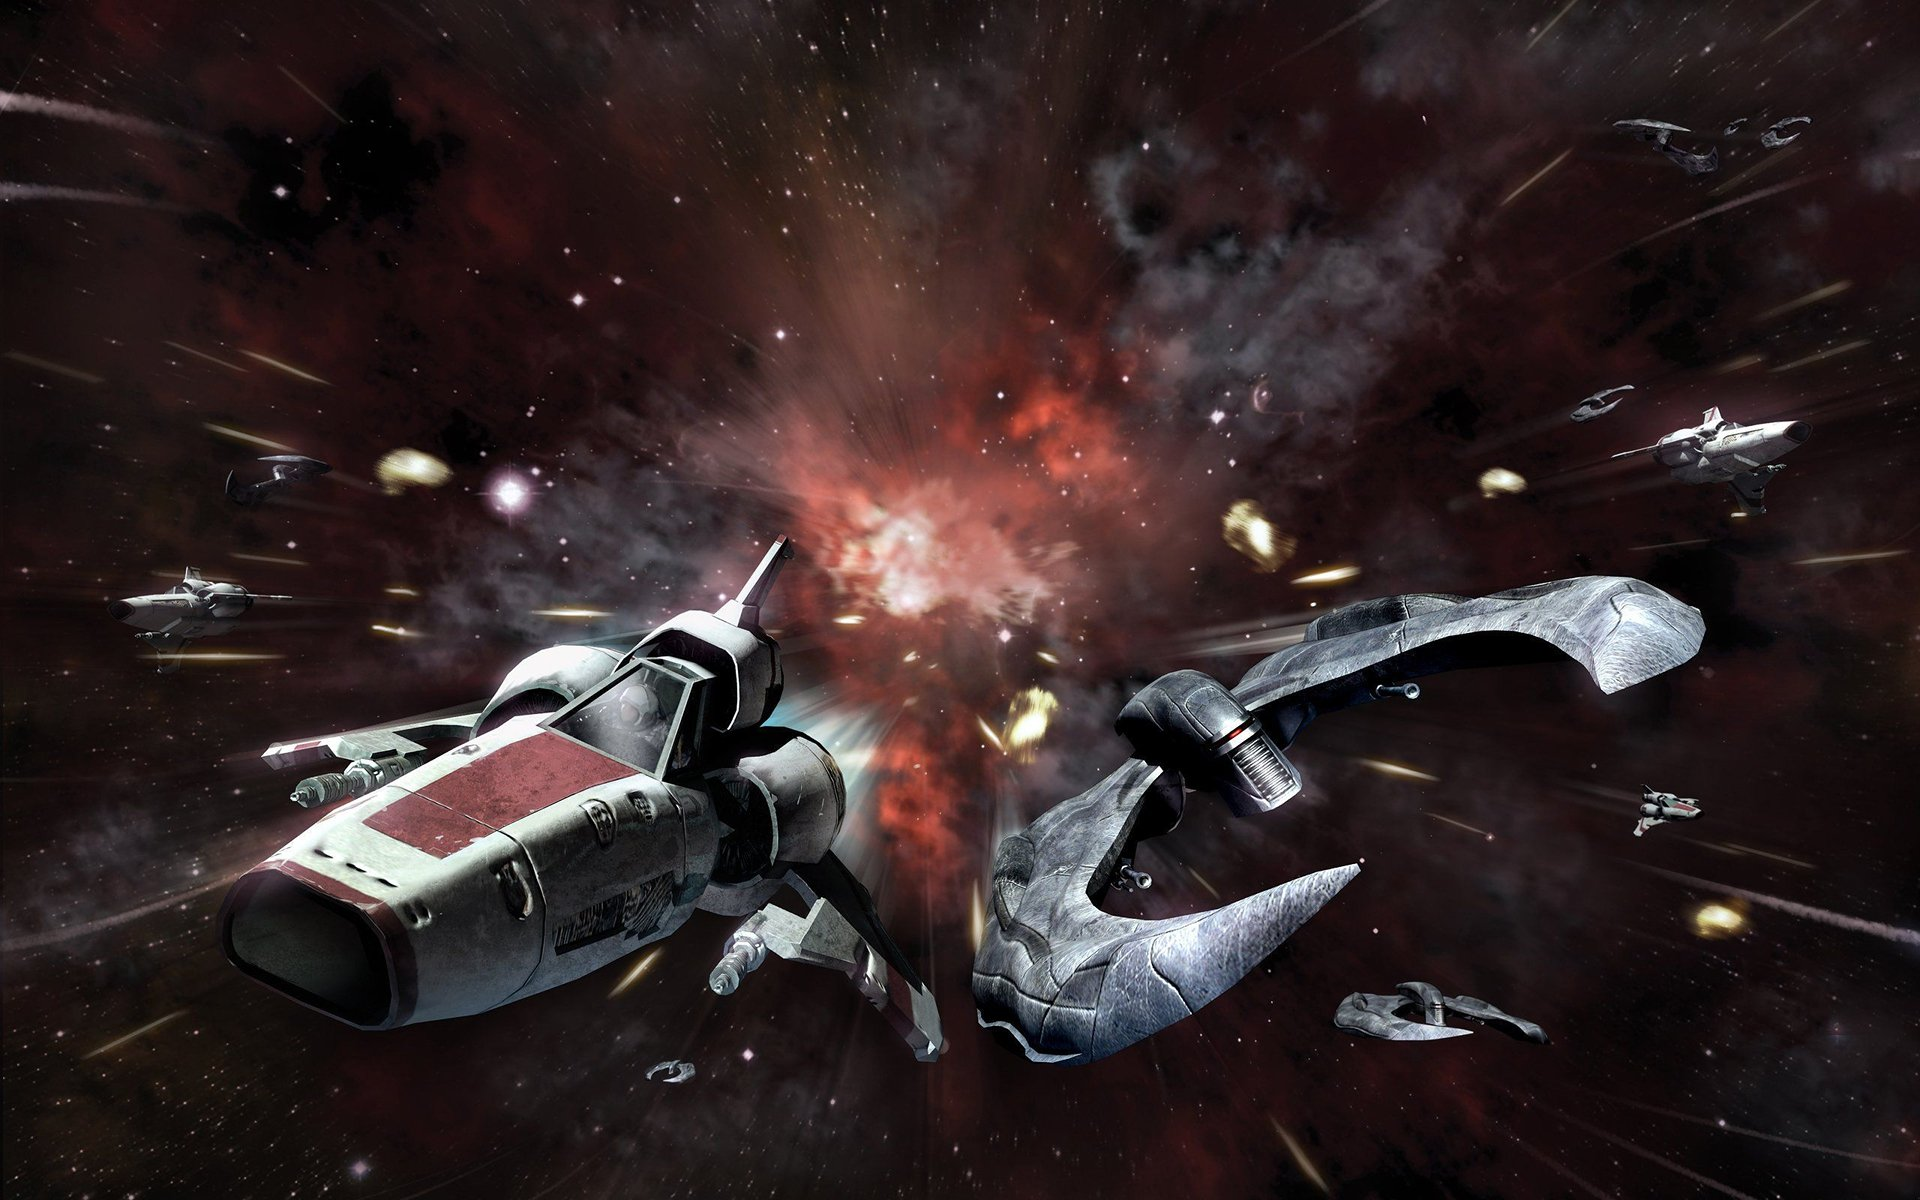 1 Battlestar Galactica Online Hd Wallpapers Background Images Wallpaper Abyss